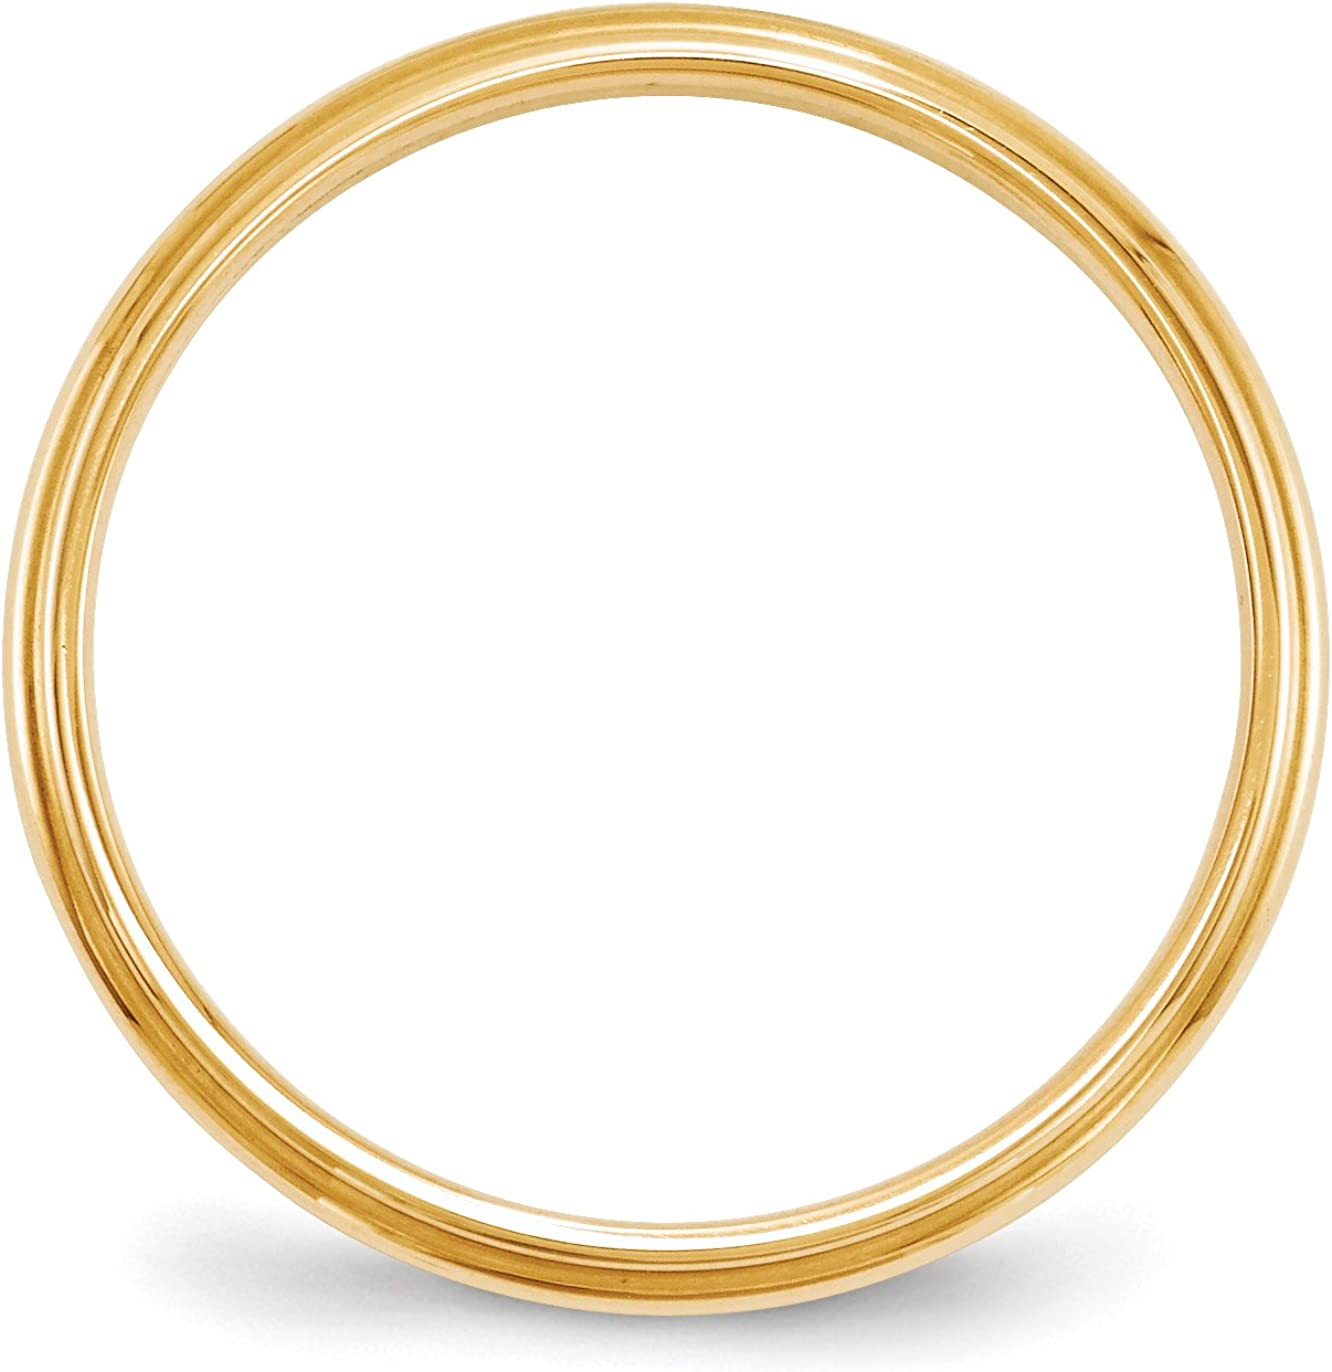 14k Yellow Gold 2.5mm Half Round Edge Wedding Band Ring Fine Jewelry Ideal Gifts For Women